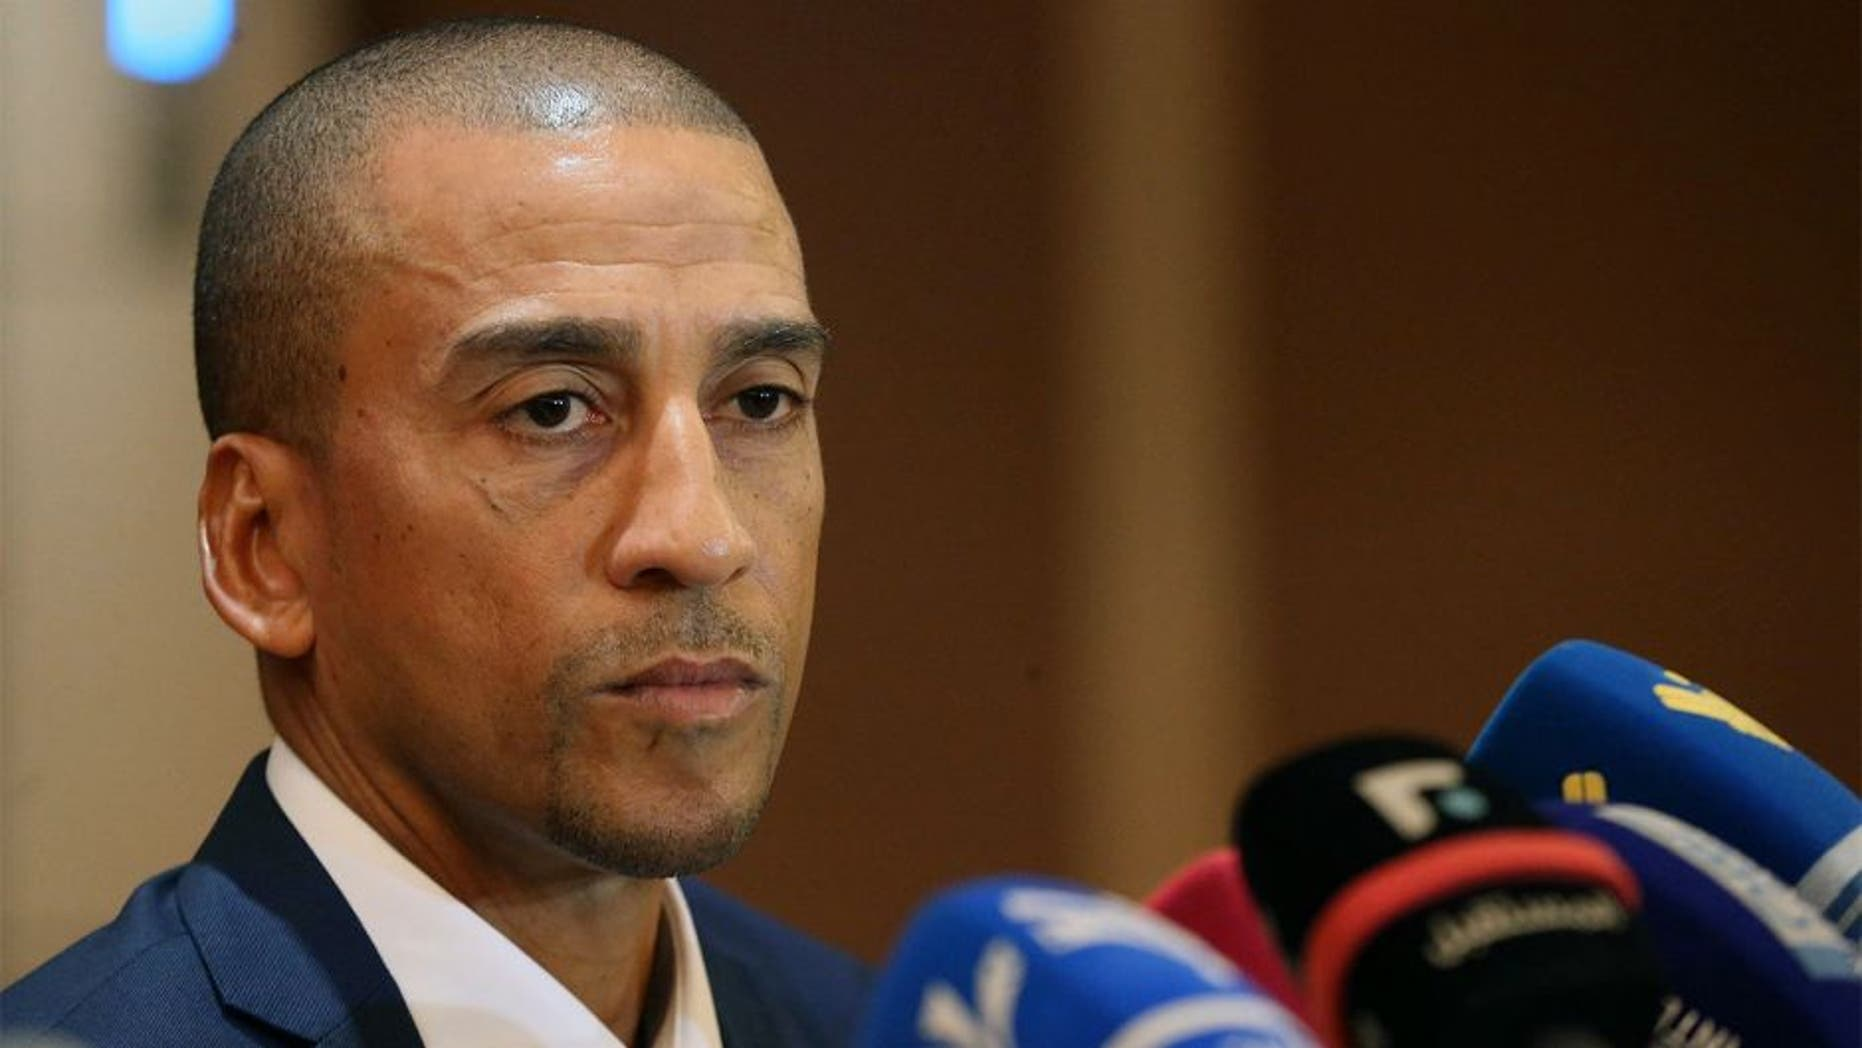 Former Trinidad and Tobago's football player David Nakhid speaks during a press conference to launch his bid to succeed FIFA president Sepp Blatter on September 28, 2015 in the Lebanese capital Beirut. The election to find a successor to Sepp Blatter will be held in Zurich on February 26, 2016. AFP PHOTO / STR (Photo credit should read -/AFP/Getty Images)